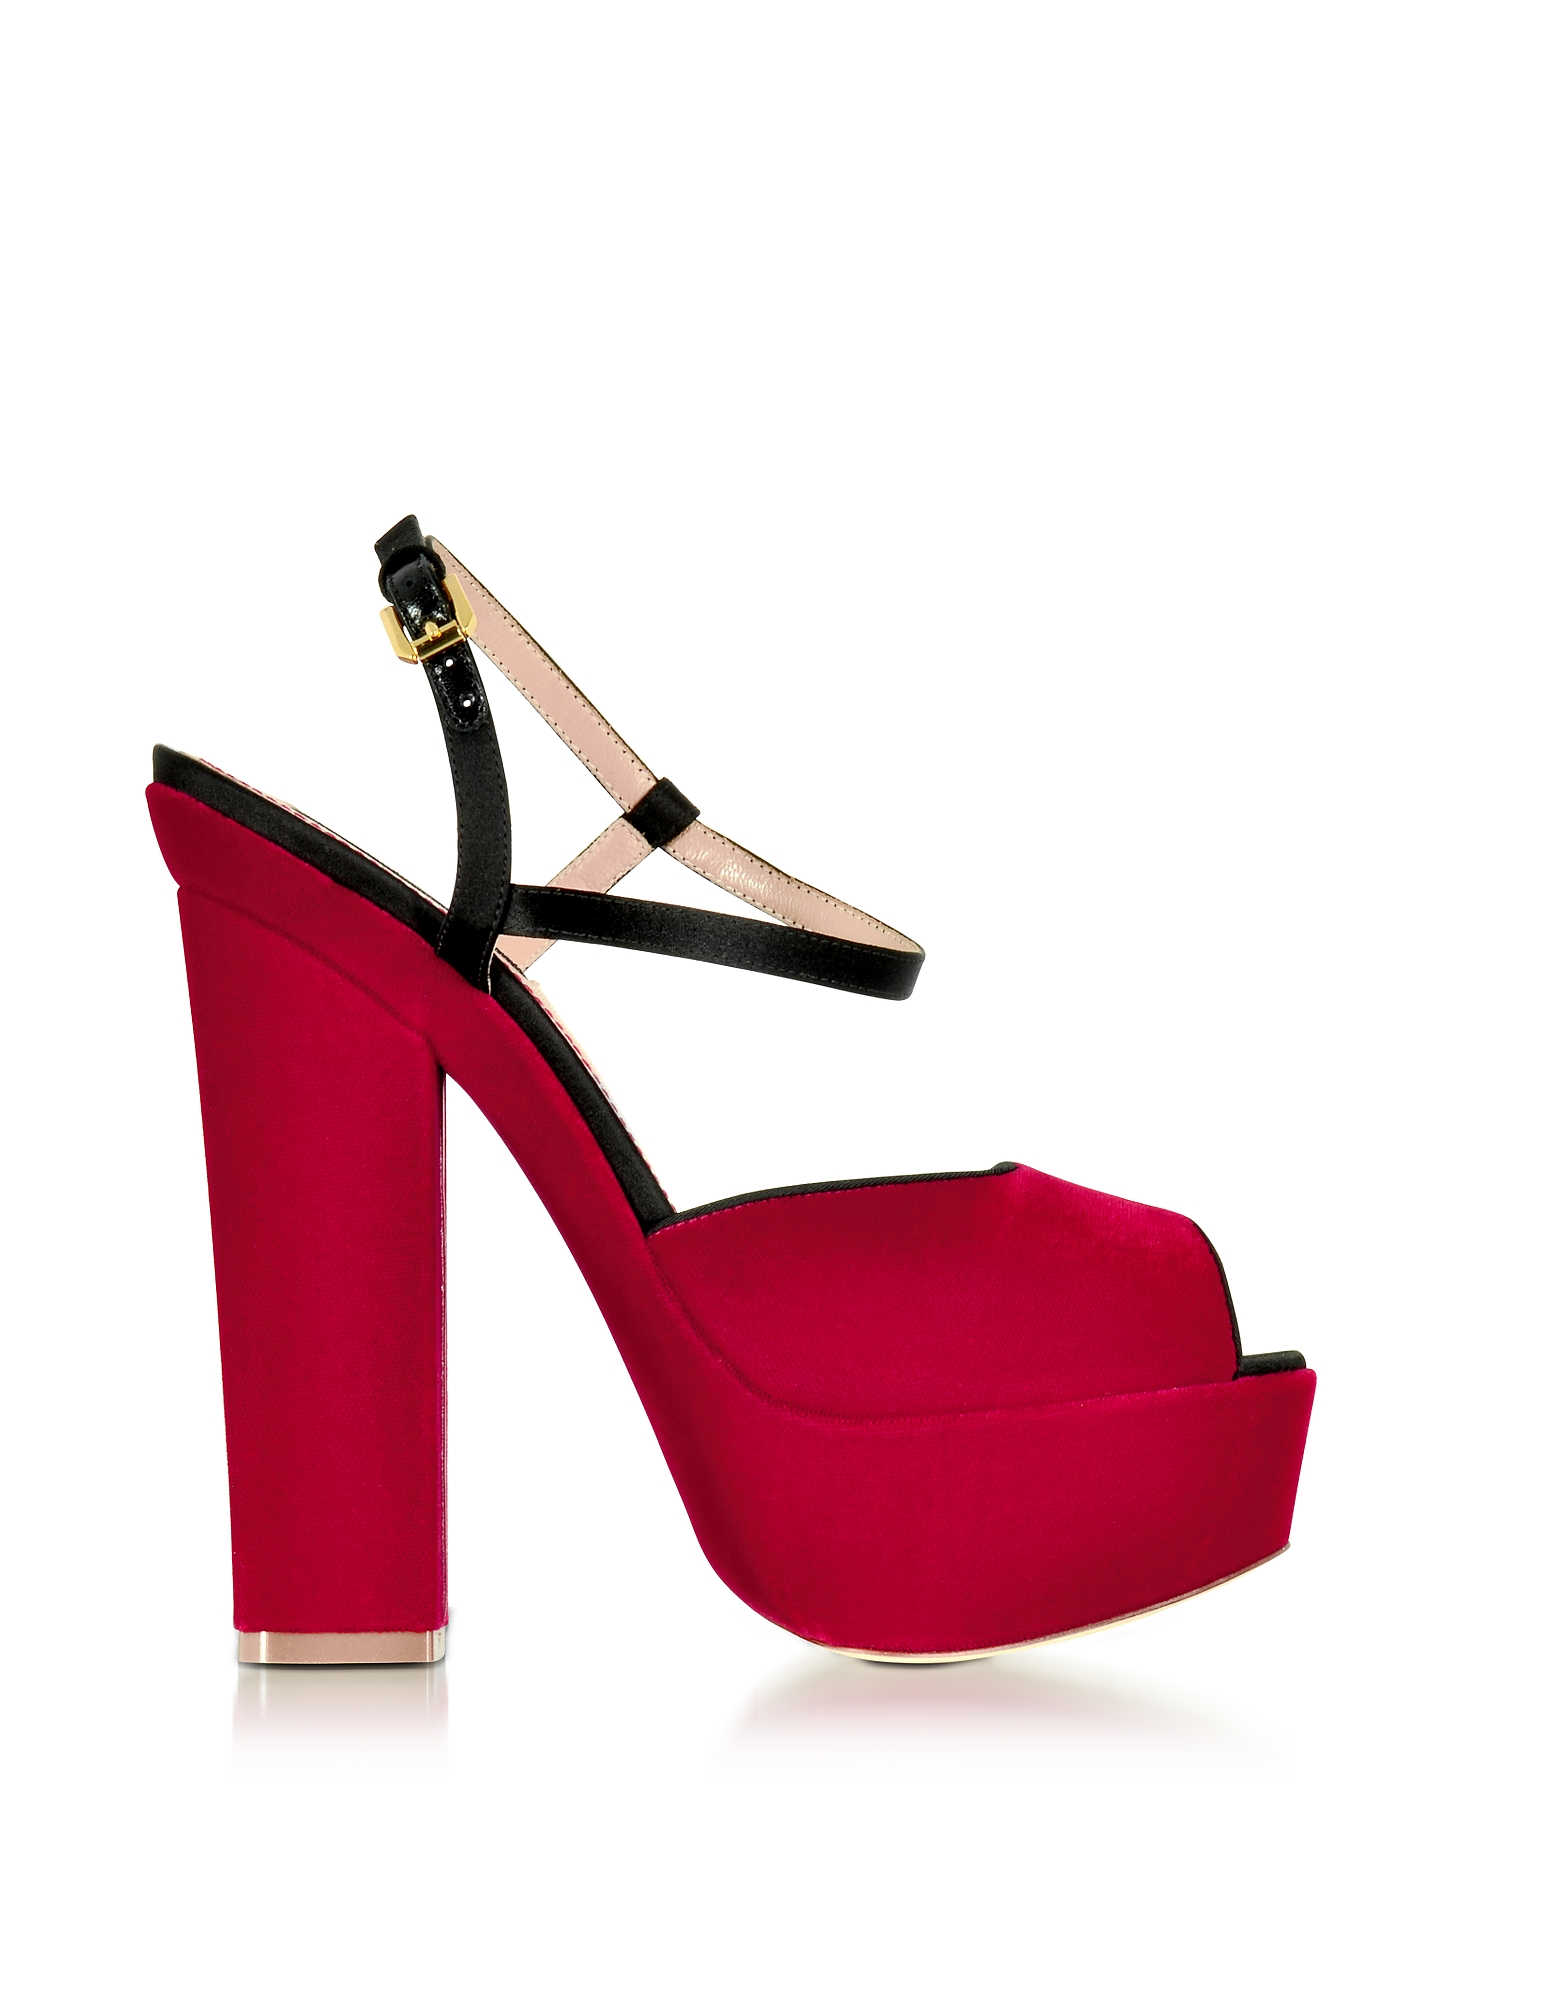 DSquared2 Shoes, Red Velvet Platform Sandal